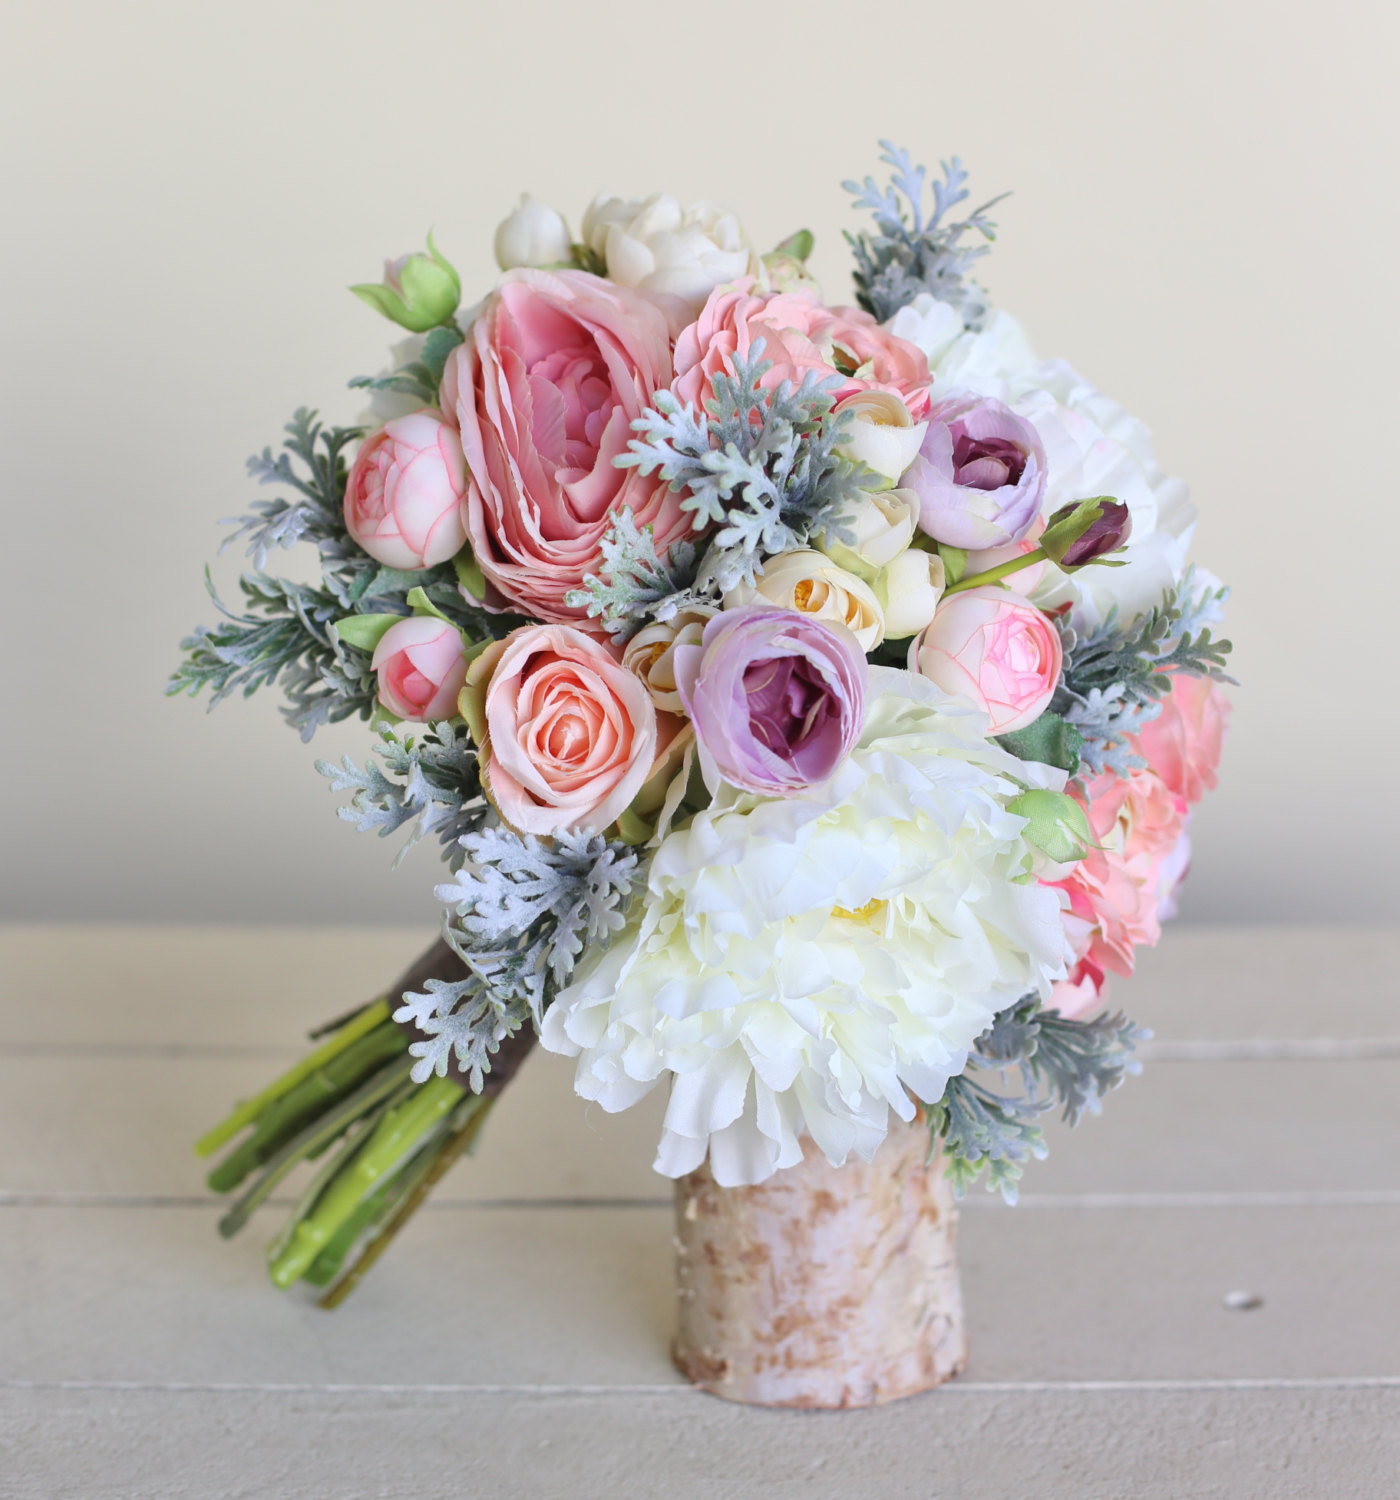 Wedding Flower Bouquet Designs: Wedding Bridal Bouquet Inspiration